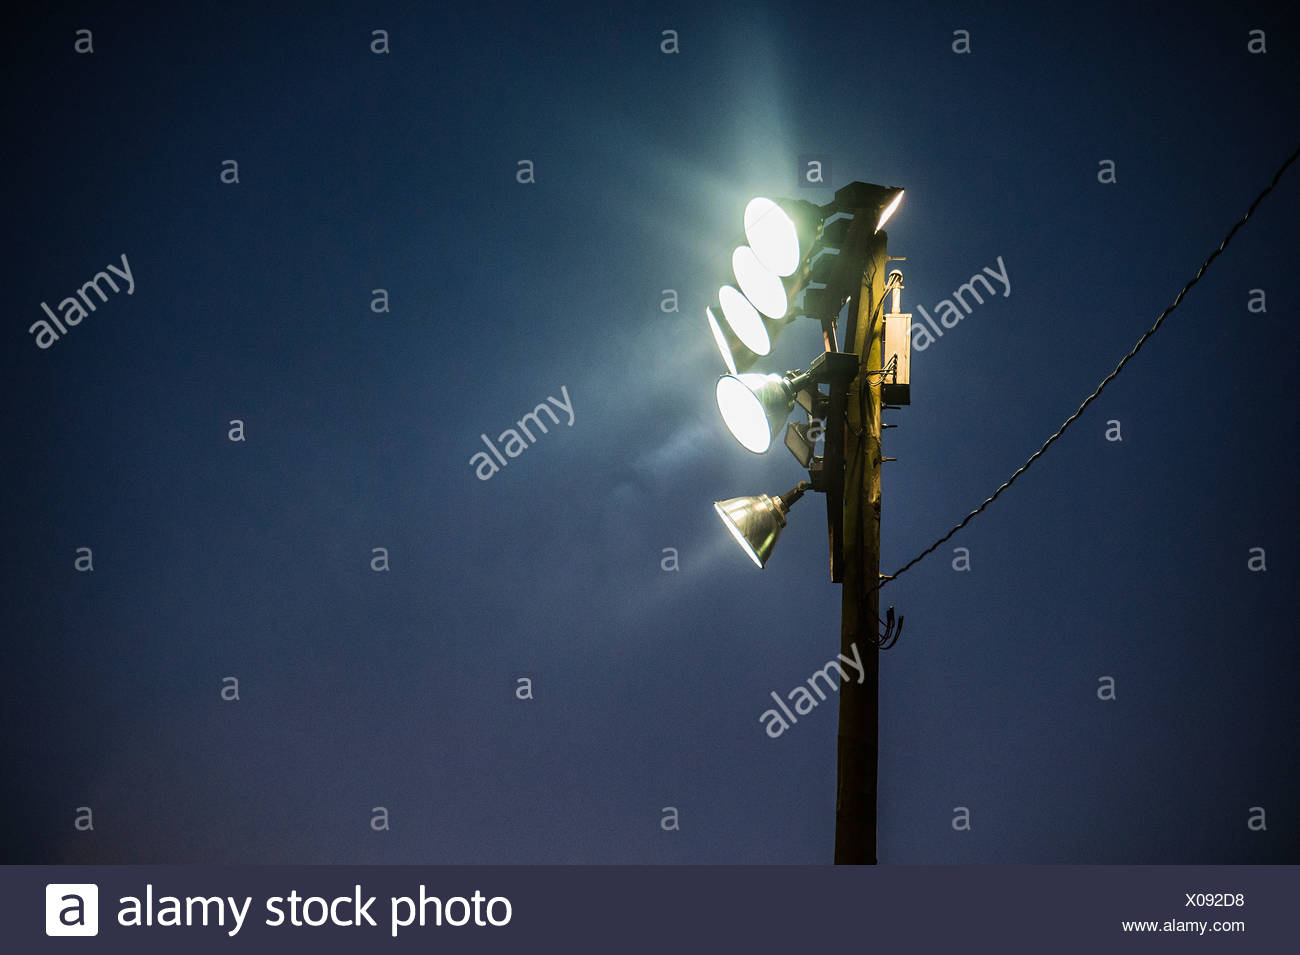 Floodlights at an outdoor event. - Stock Image